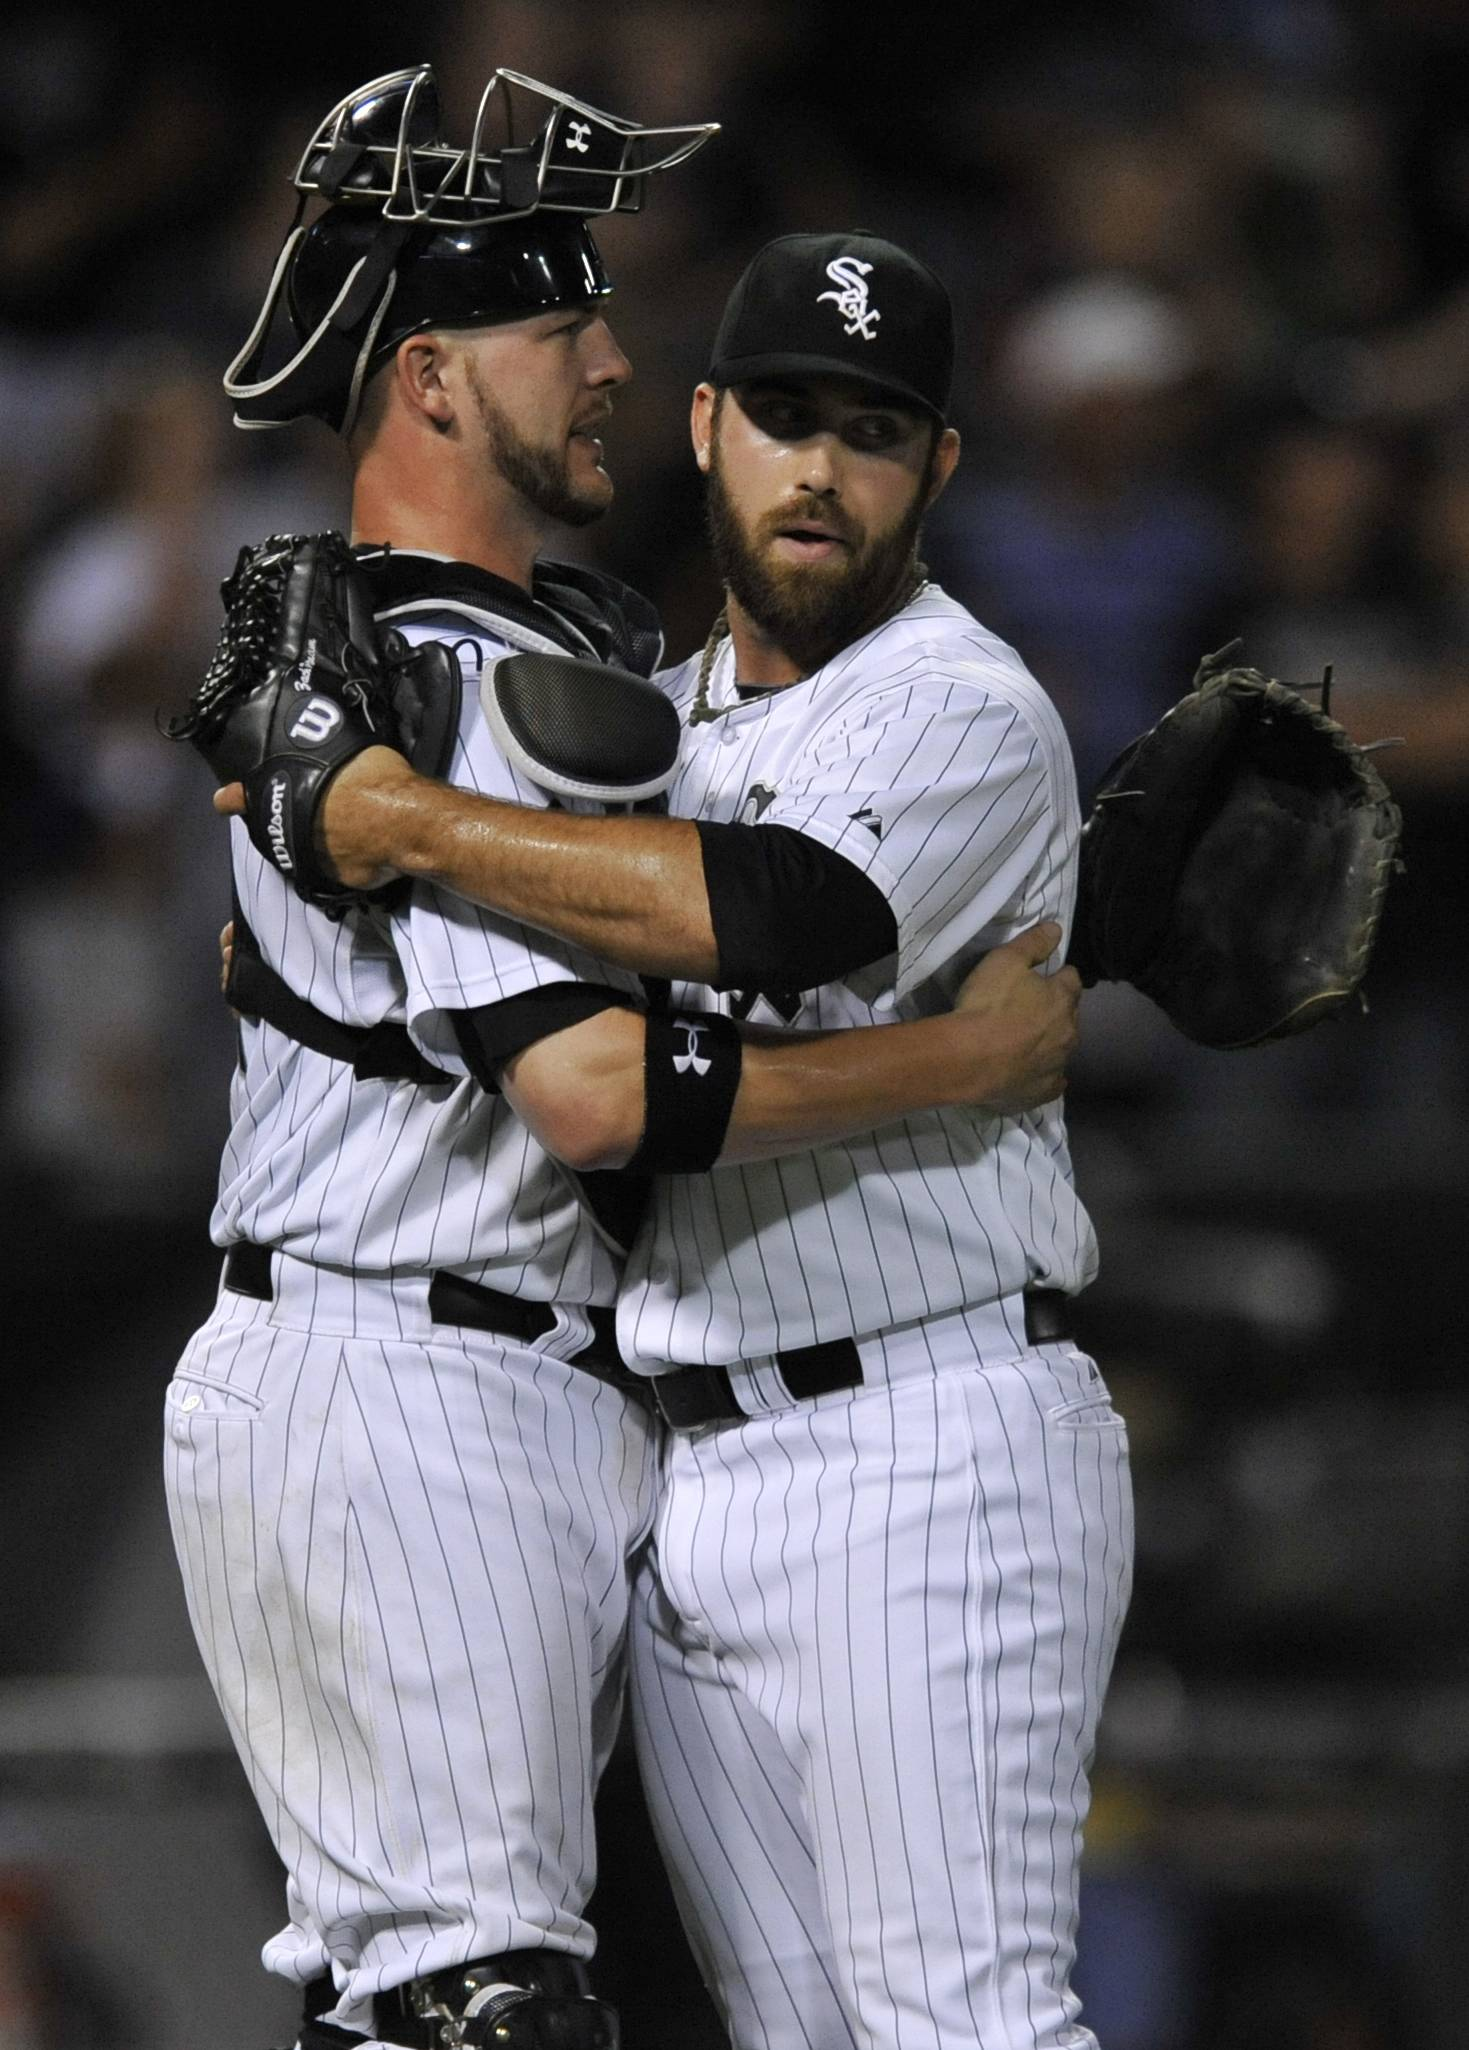 White Sox reliever Zach Putnam, right, celebrates with catcher Tyler Flowers after picking up the save in Saturday night's 4-3 victory over the Astros at U.S. Cellular Field. Flowers drove in the go-ahead run in the fifth inning with a double.